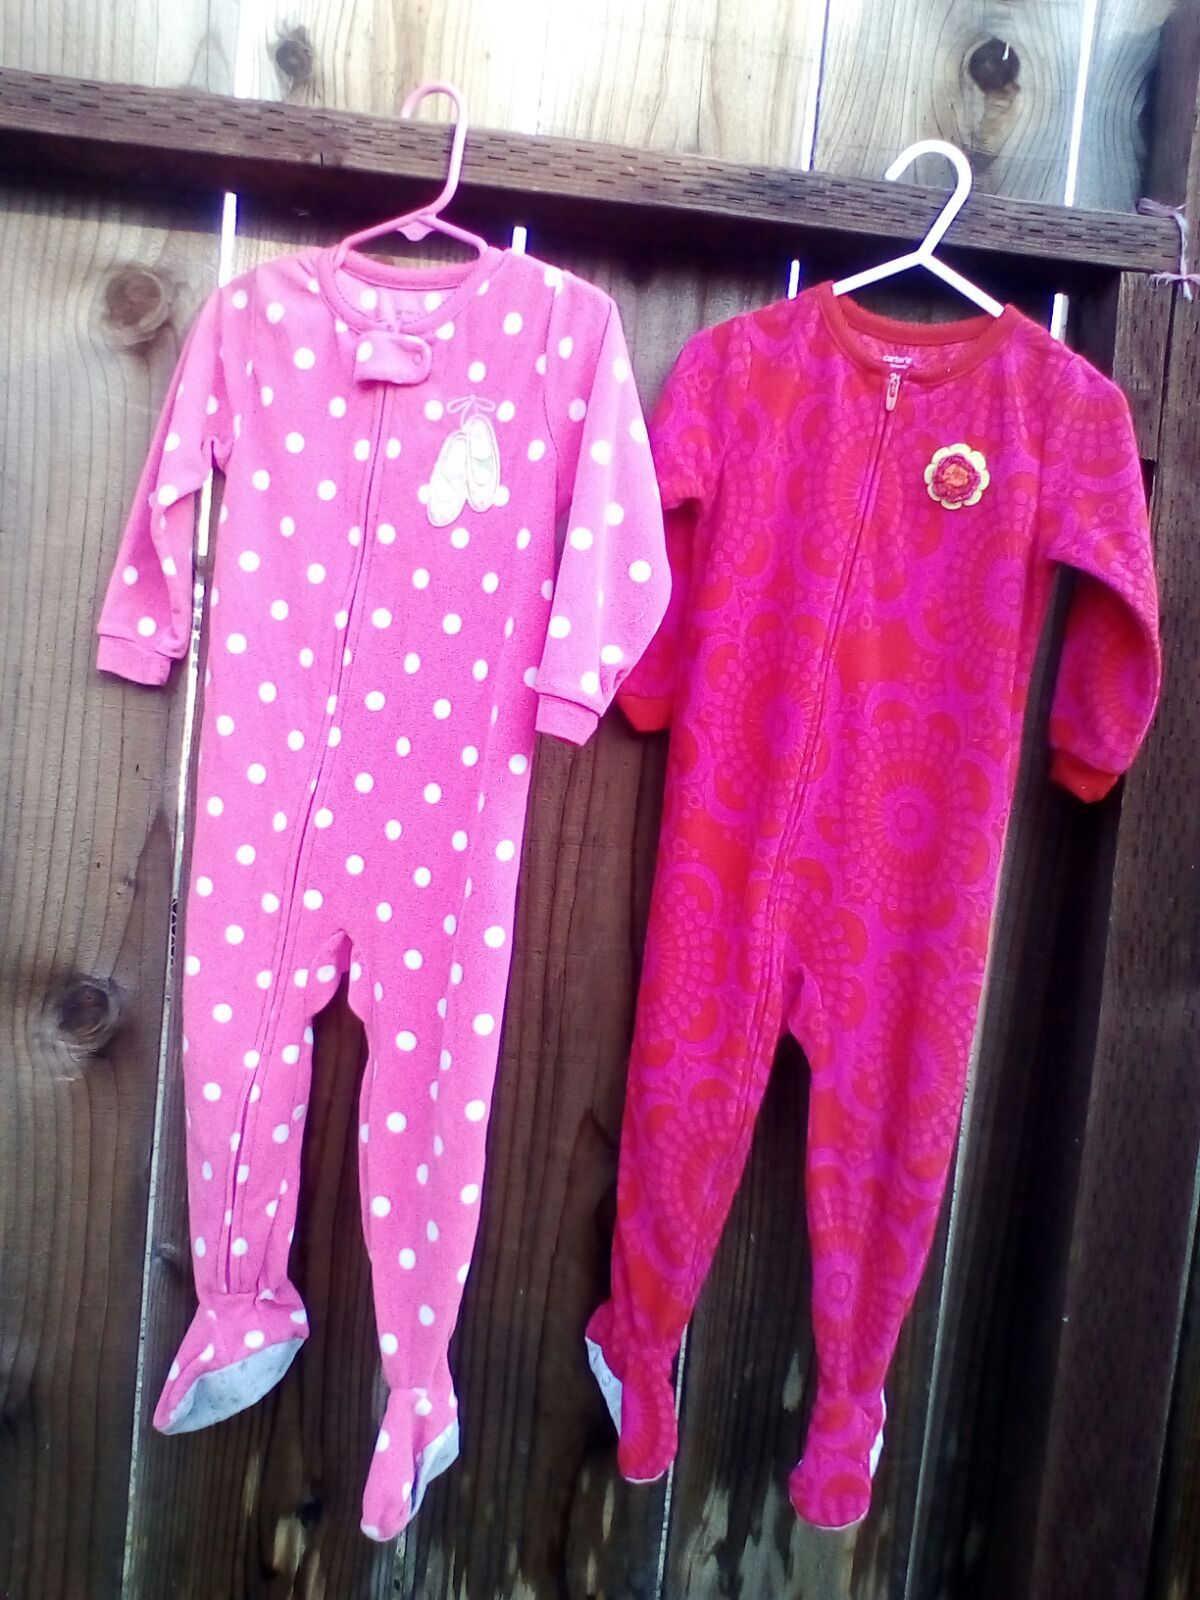 fa59ced76 CARTERS PAJAMAS SIZE 2T - Mercari  BUY   SELL THINGS YOU LOVE